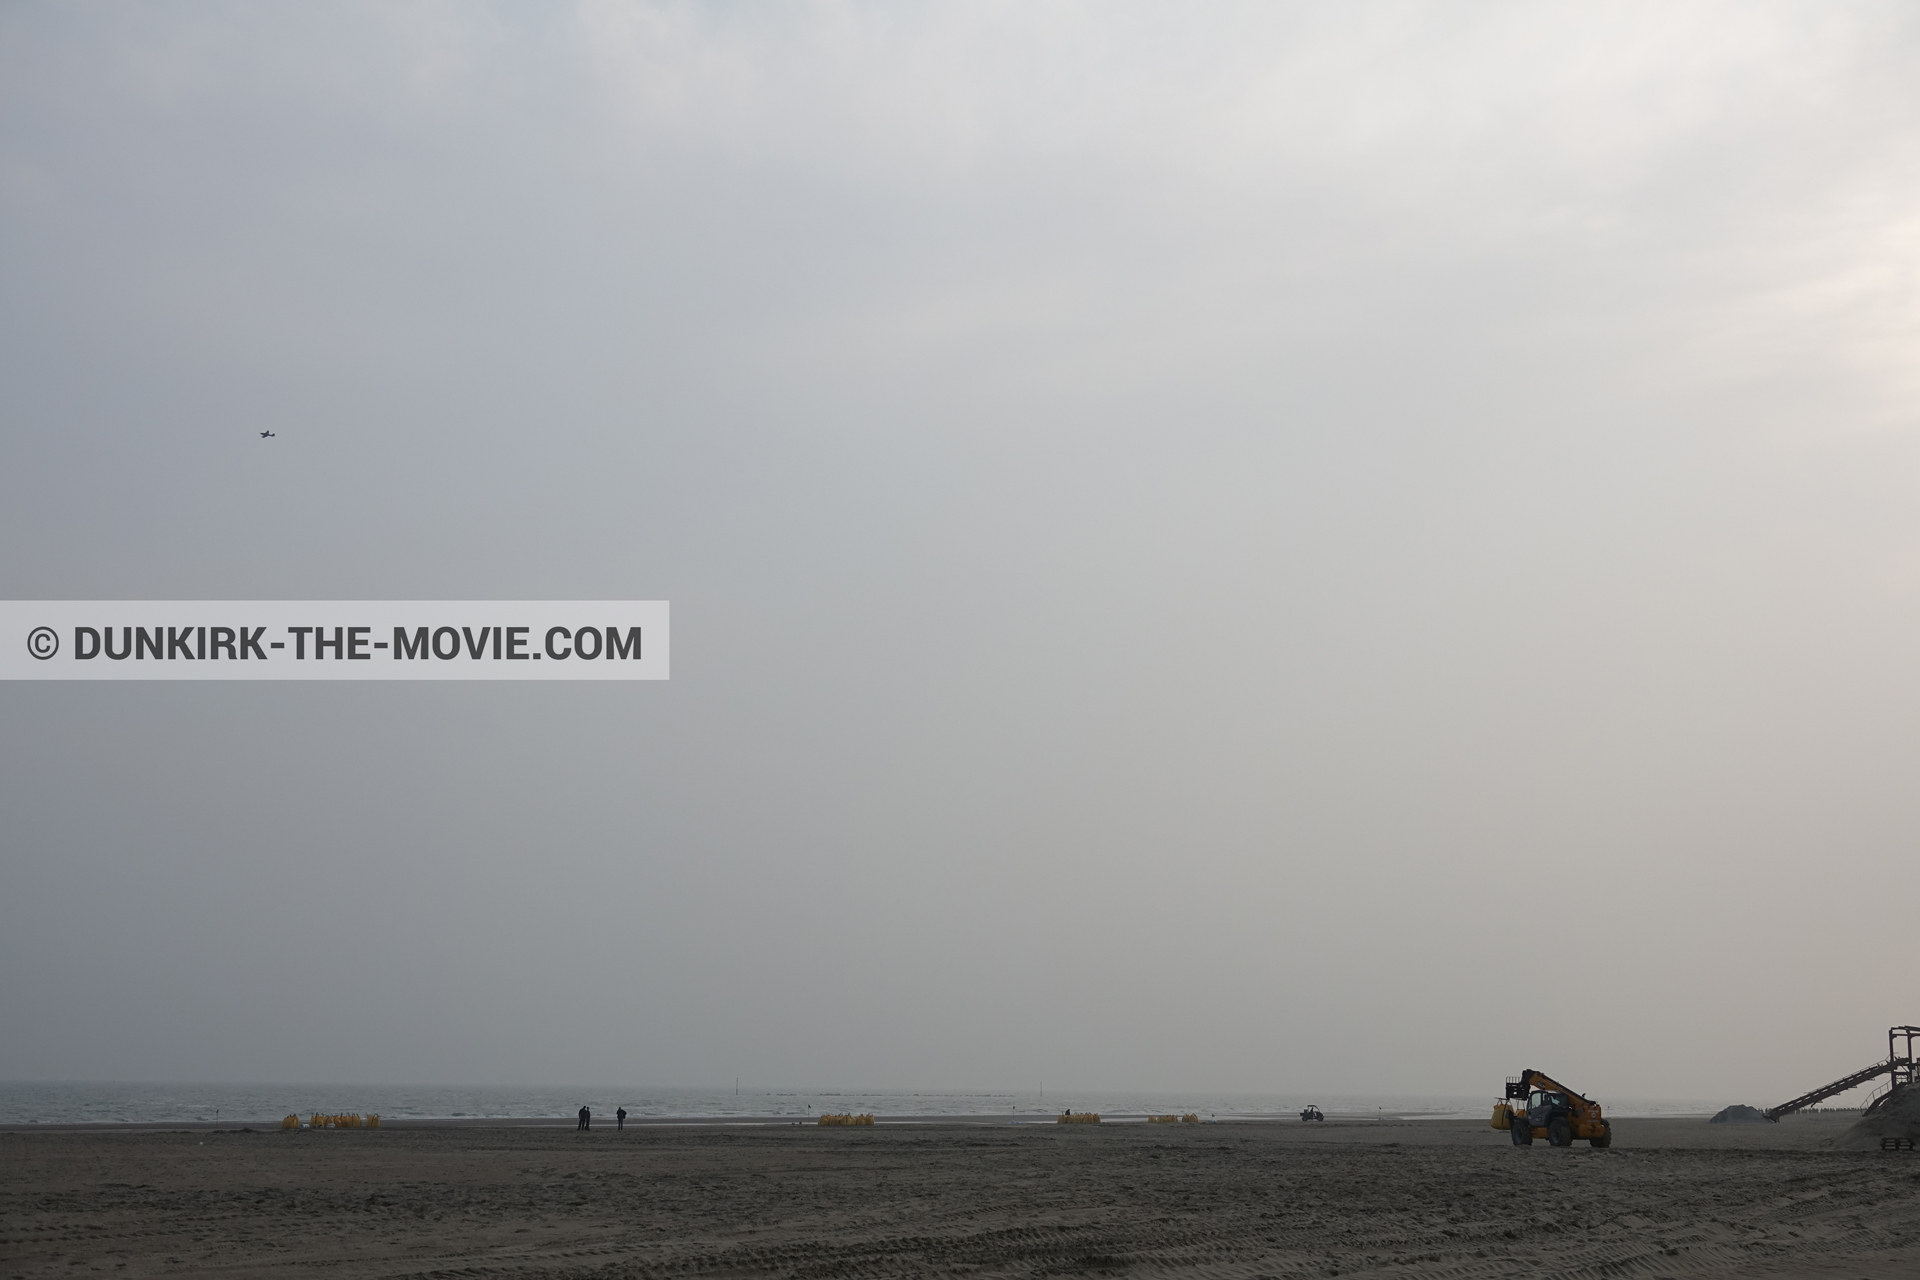 Picture with plane, grey sky, decor, beach,  from behind the scene of the Dunkirk movie by Nolan